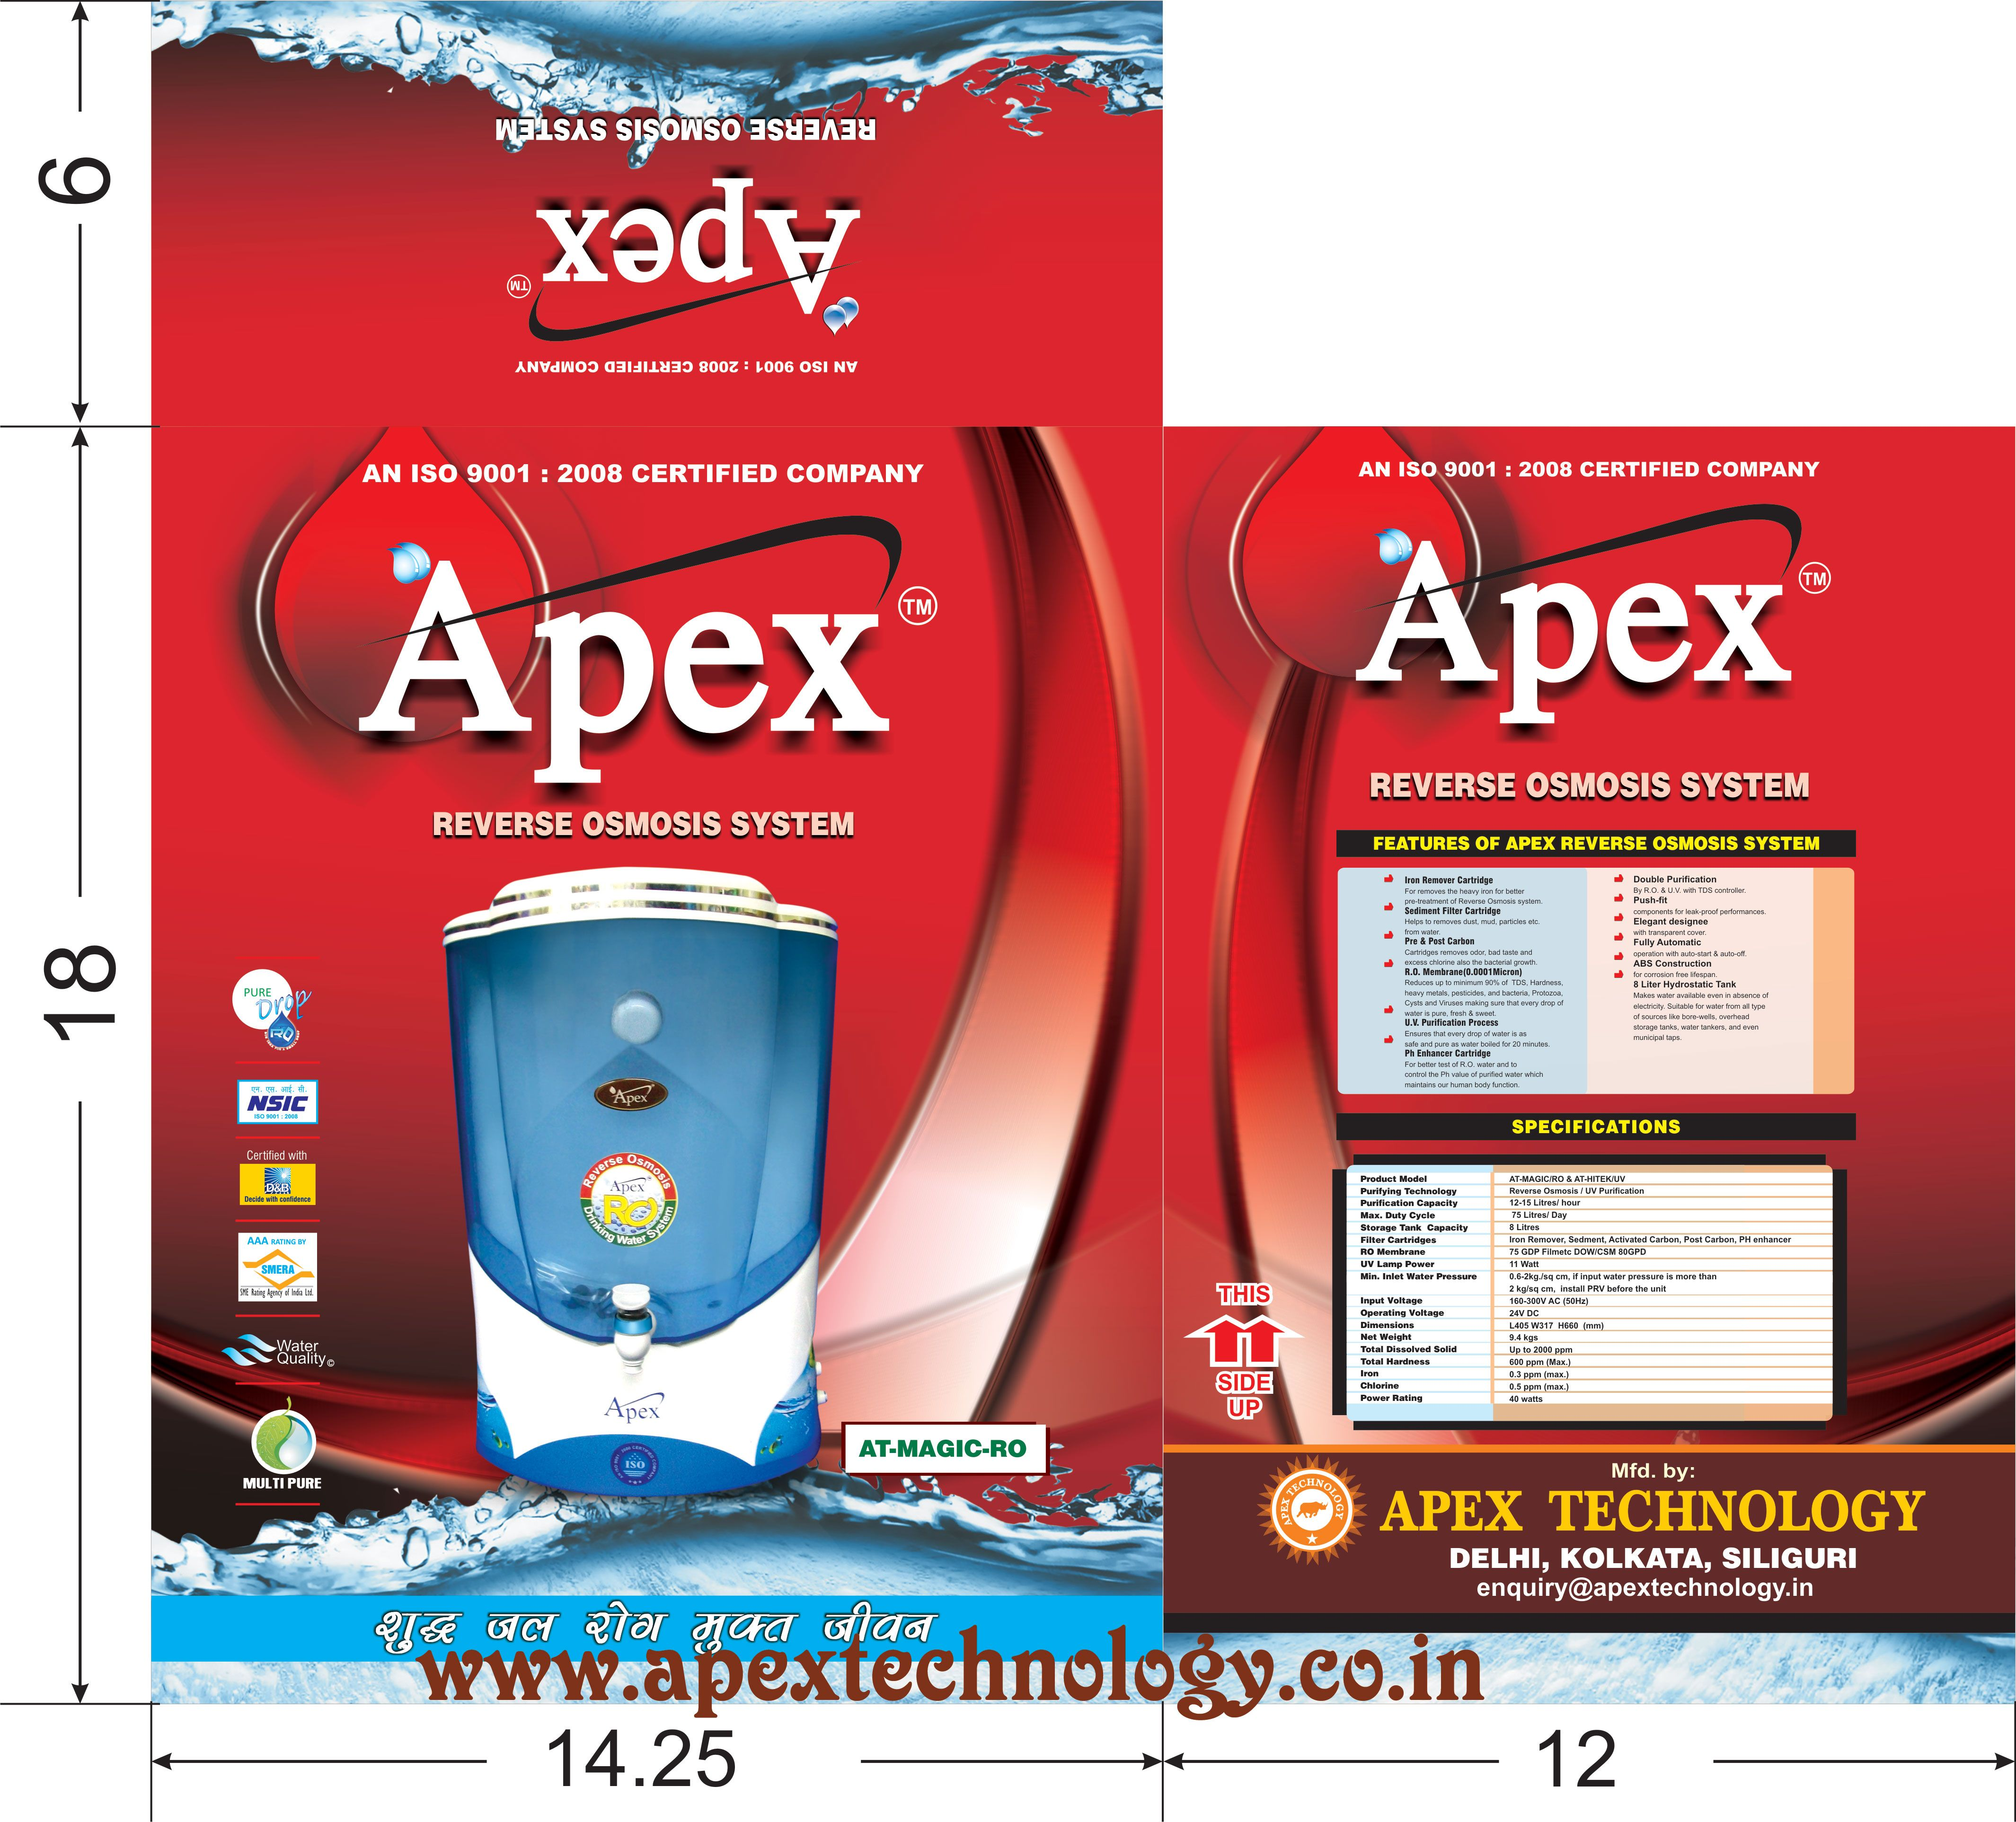 Apex Technology was set up in 2001 as a Manufacturer